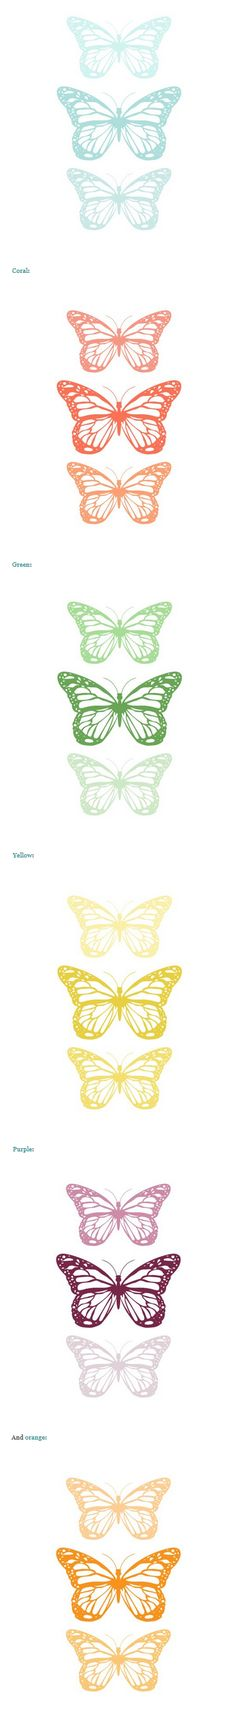 Free printable butterflies from Our Humble Abode. Good for butterfly wreath Butterfly Images, Butterfly Crafts, Paper Art, Paper Crafts, Butterfly Birthday Party, Clip Art, Freebies, Planner, Free Prints